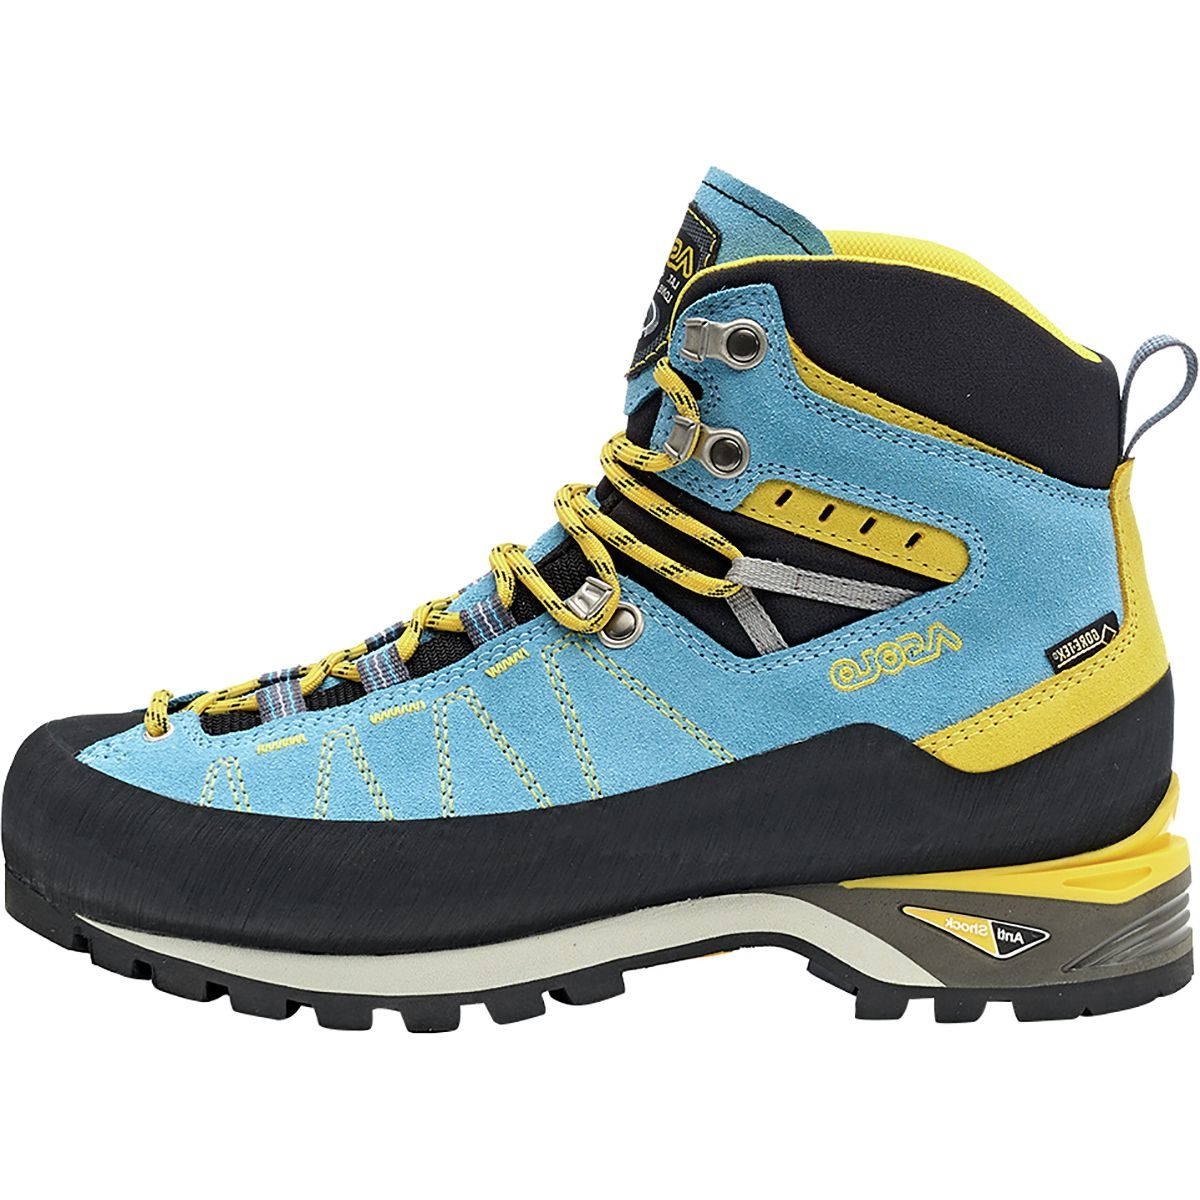 Asolo Piz GV Mountaineering Boot - Women's